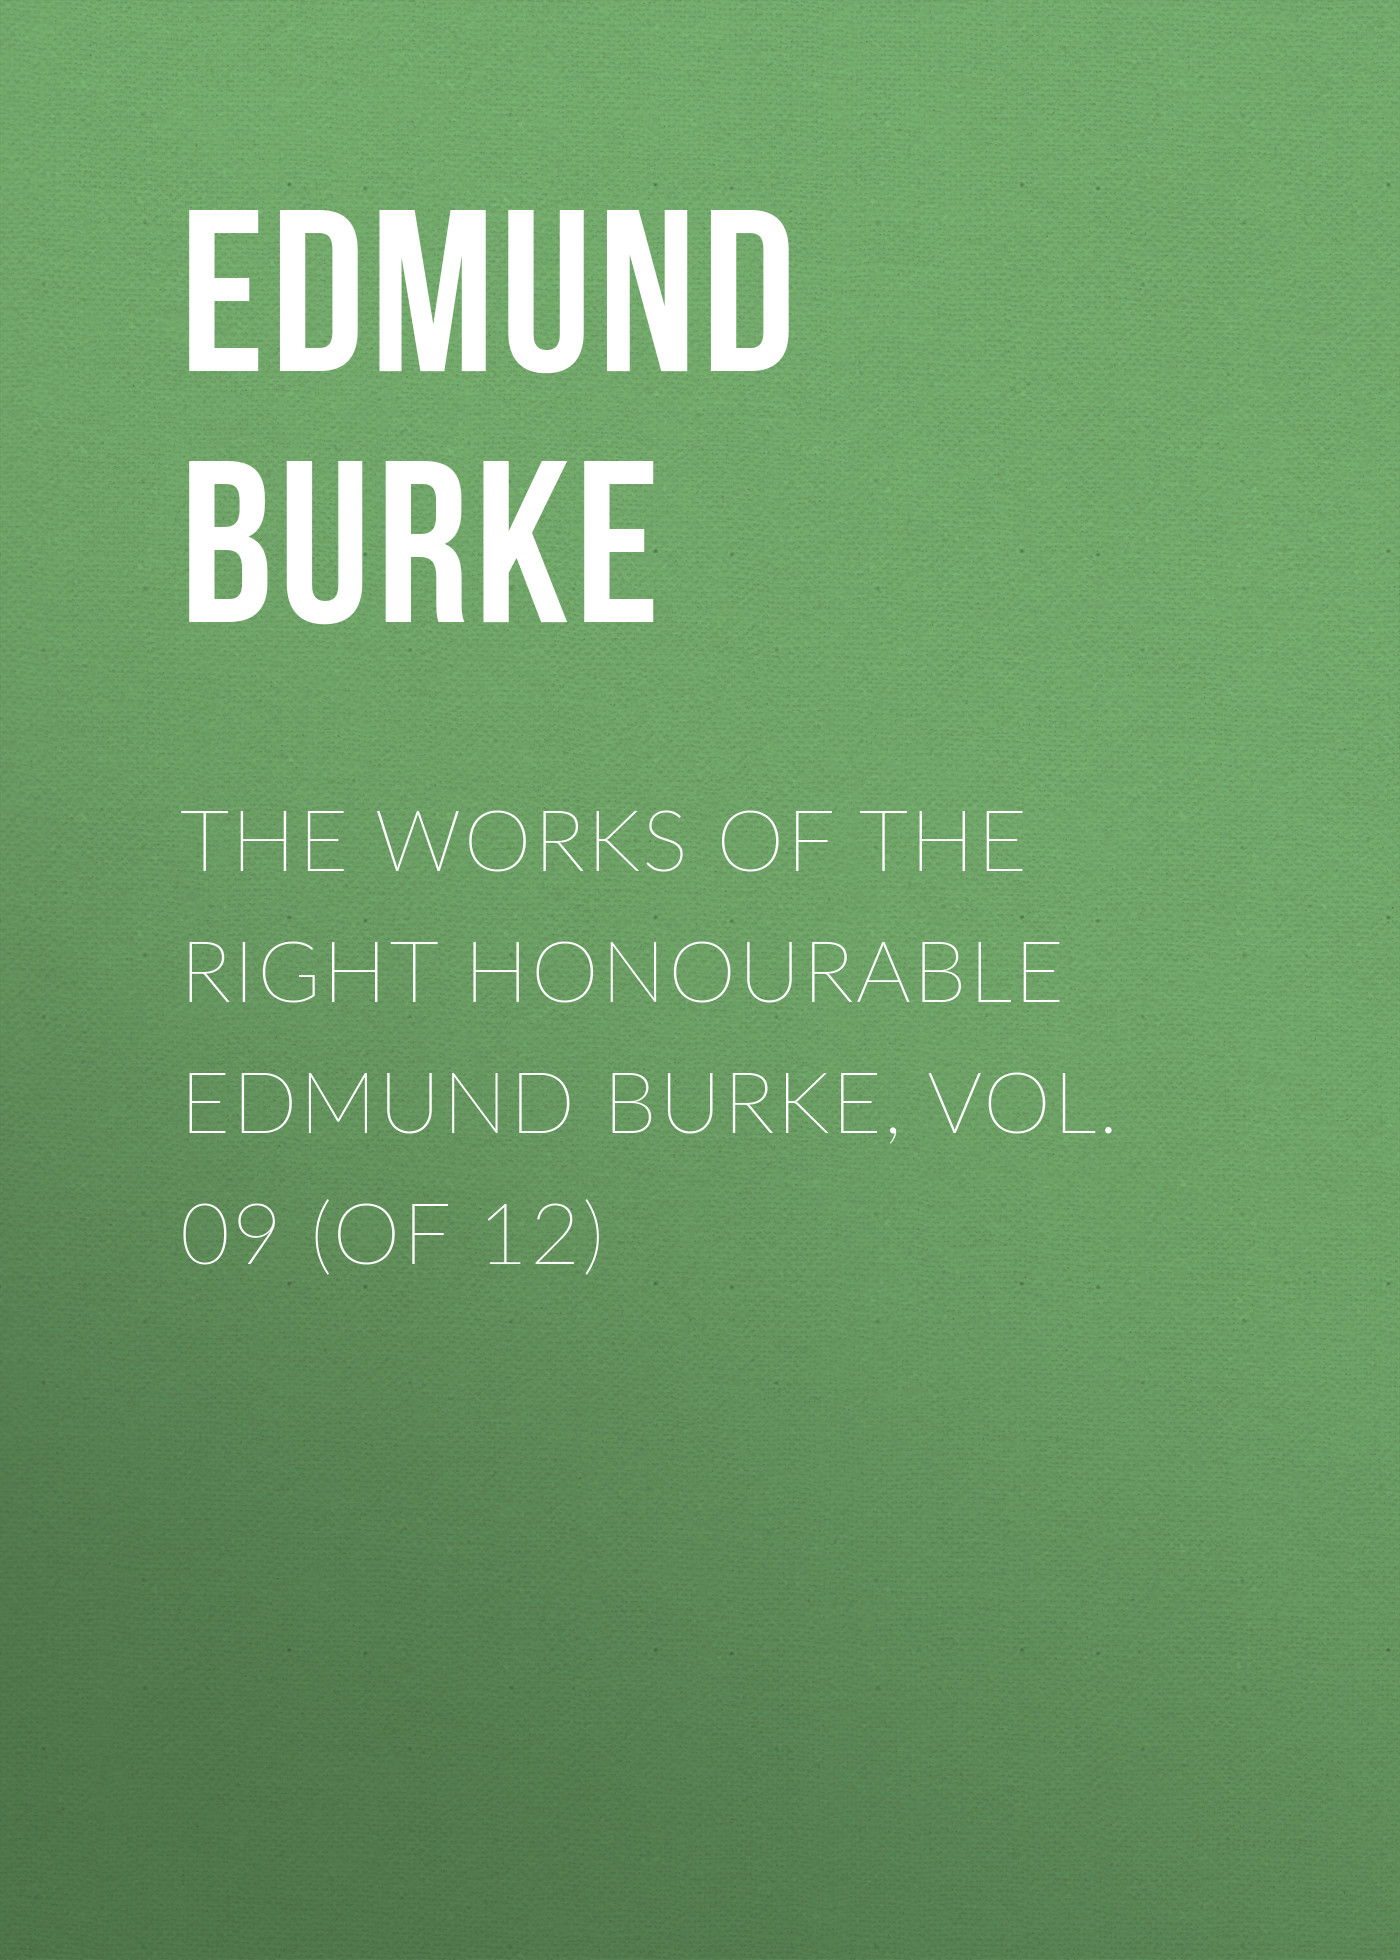 Edmund Burke The Works of the Right Honourable Edmund Burke, Vol. 09 (of 12) burke edmund the speeches of the right honourable edmund burke on the impeachment of warren hastings